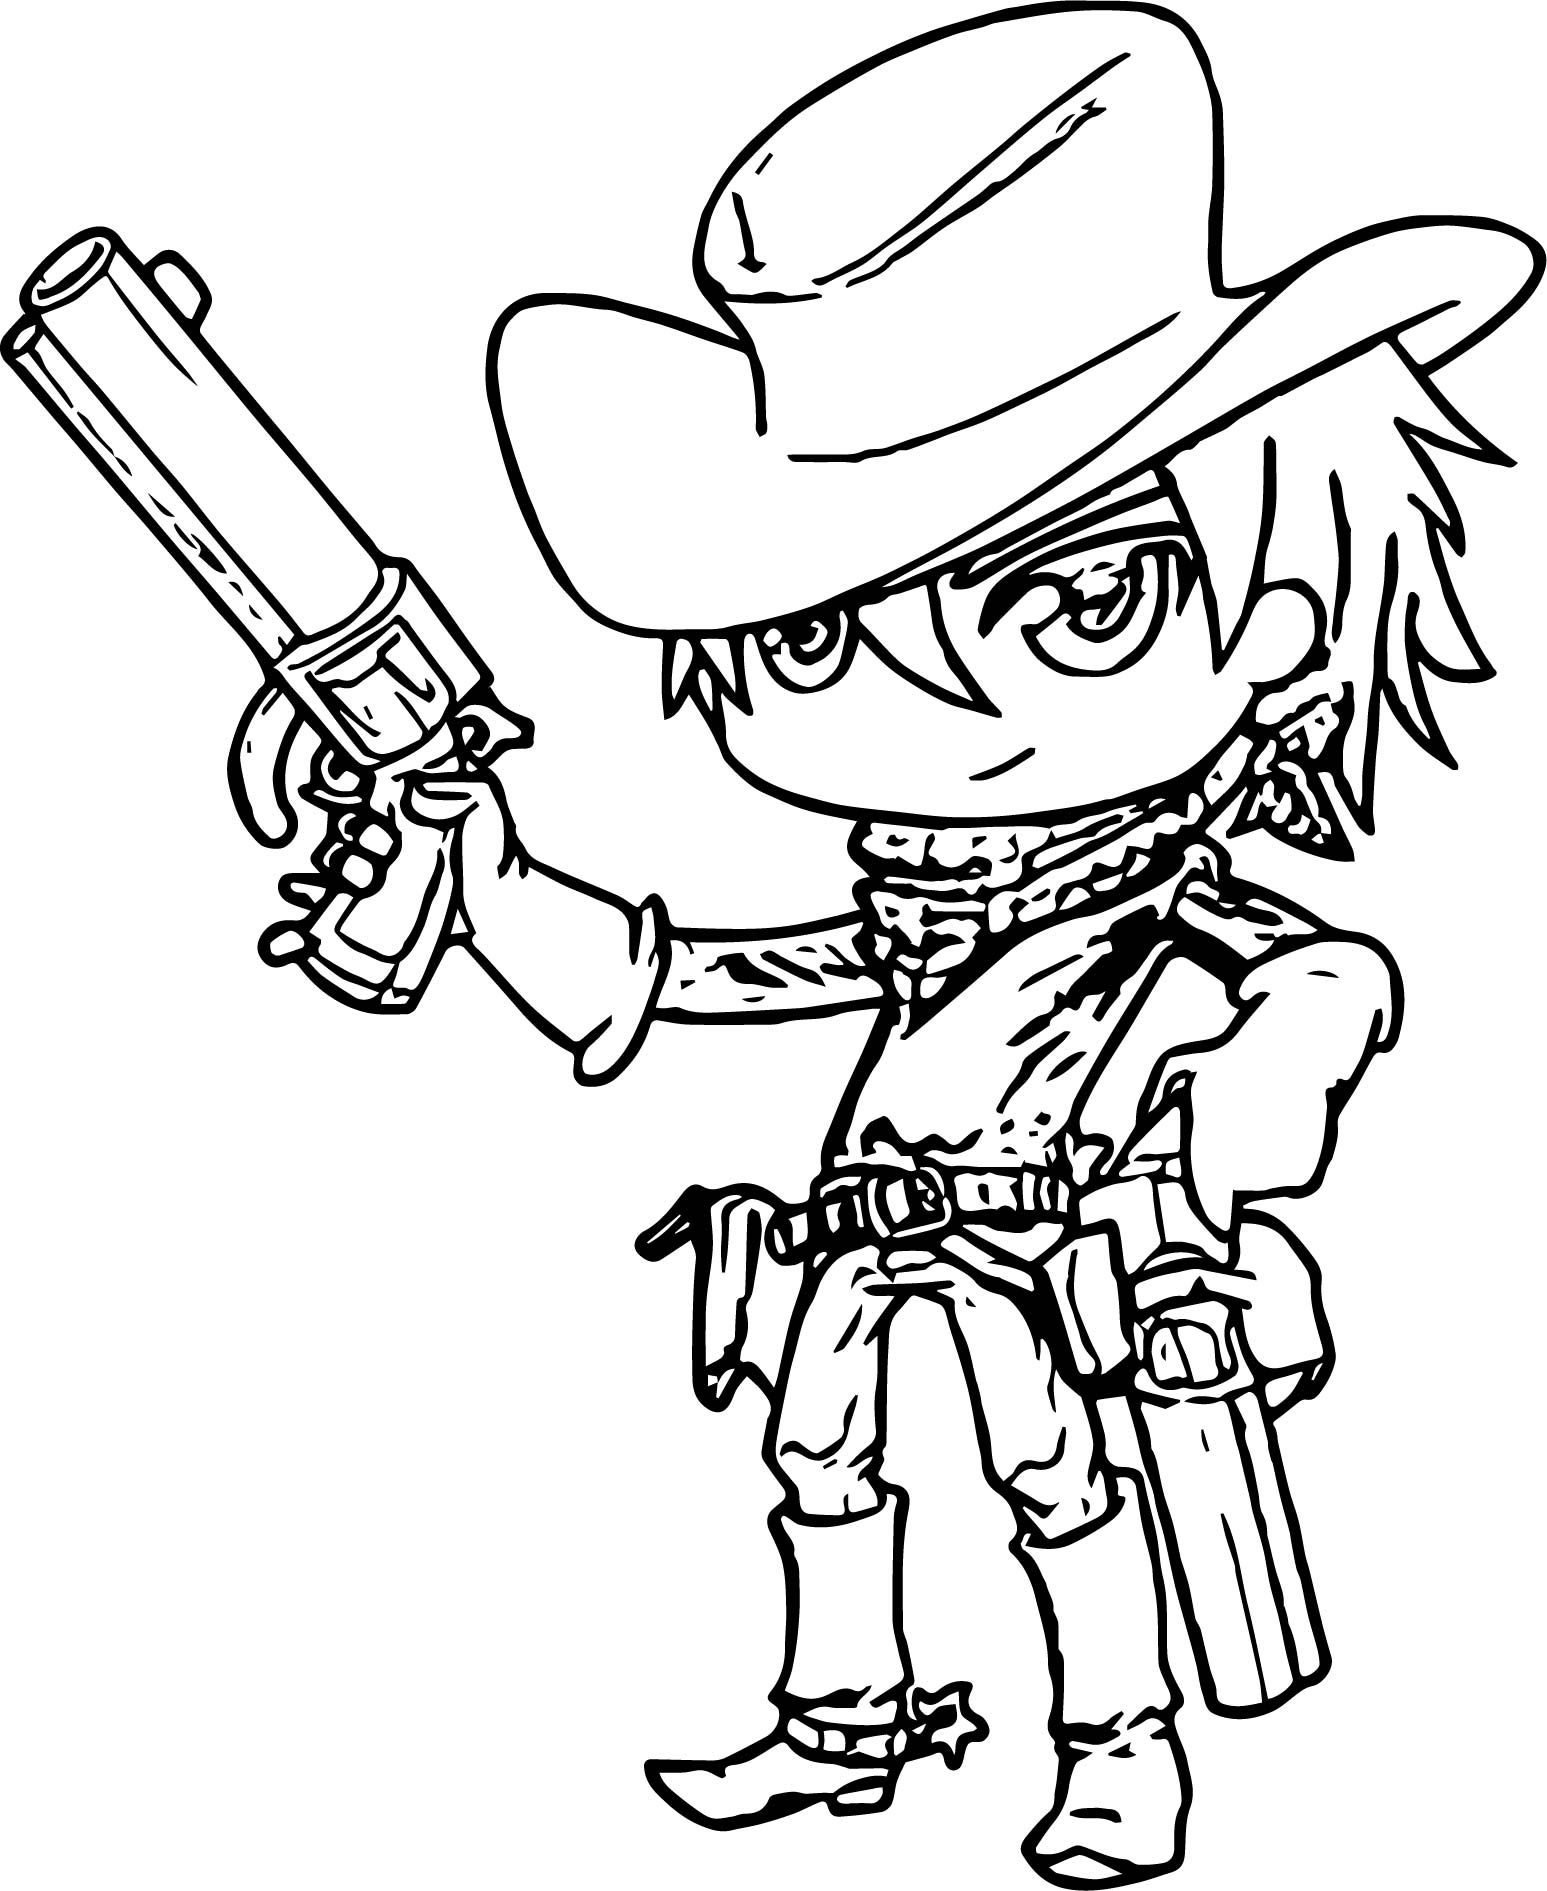 awesome Manga Cute Cowboy Cute Cowboy Coloring Page (With ...